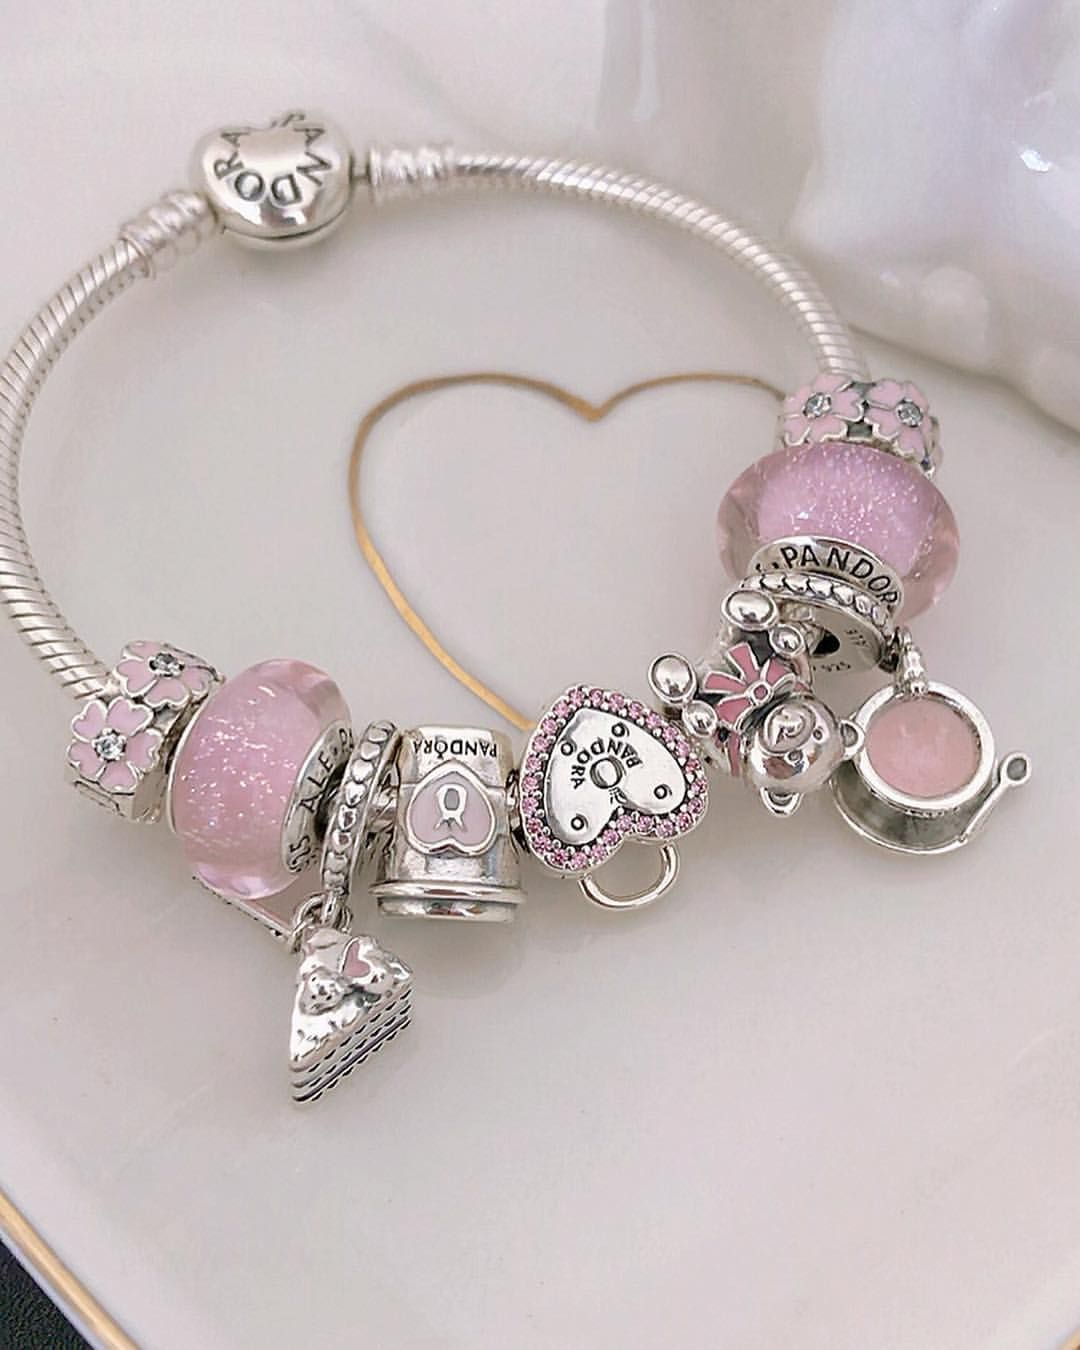 Still Obsessed With Pink And Silver Theme Got The Cute Little Teacup Charm Recently Pandora Bracelet Pink Pandora Bracelet Designs Disney Pandora Bracelet